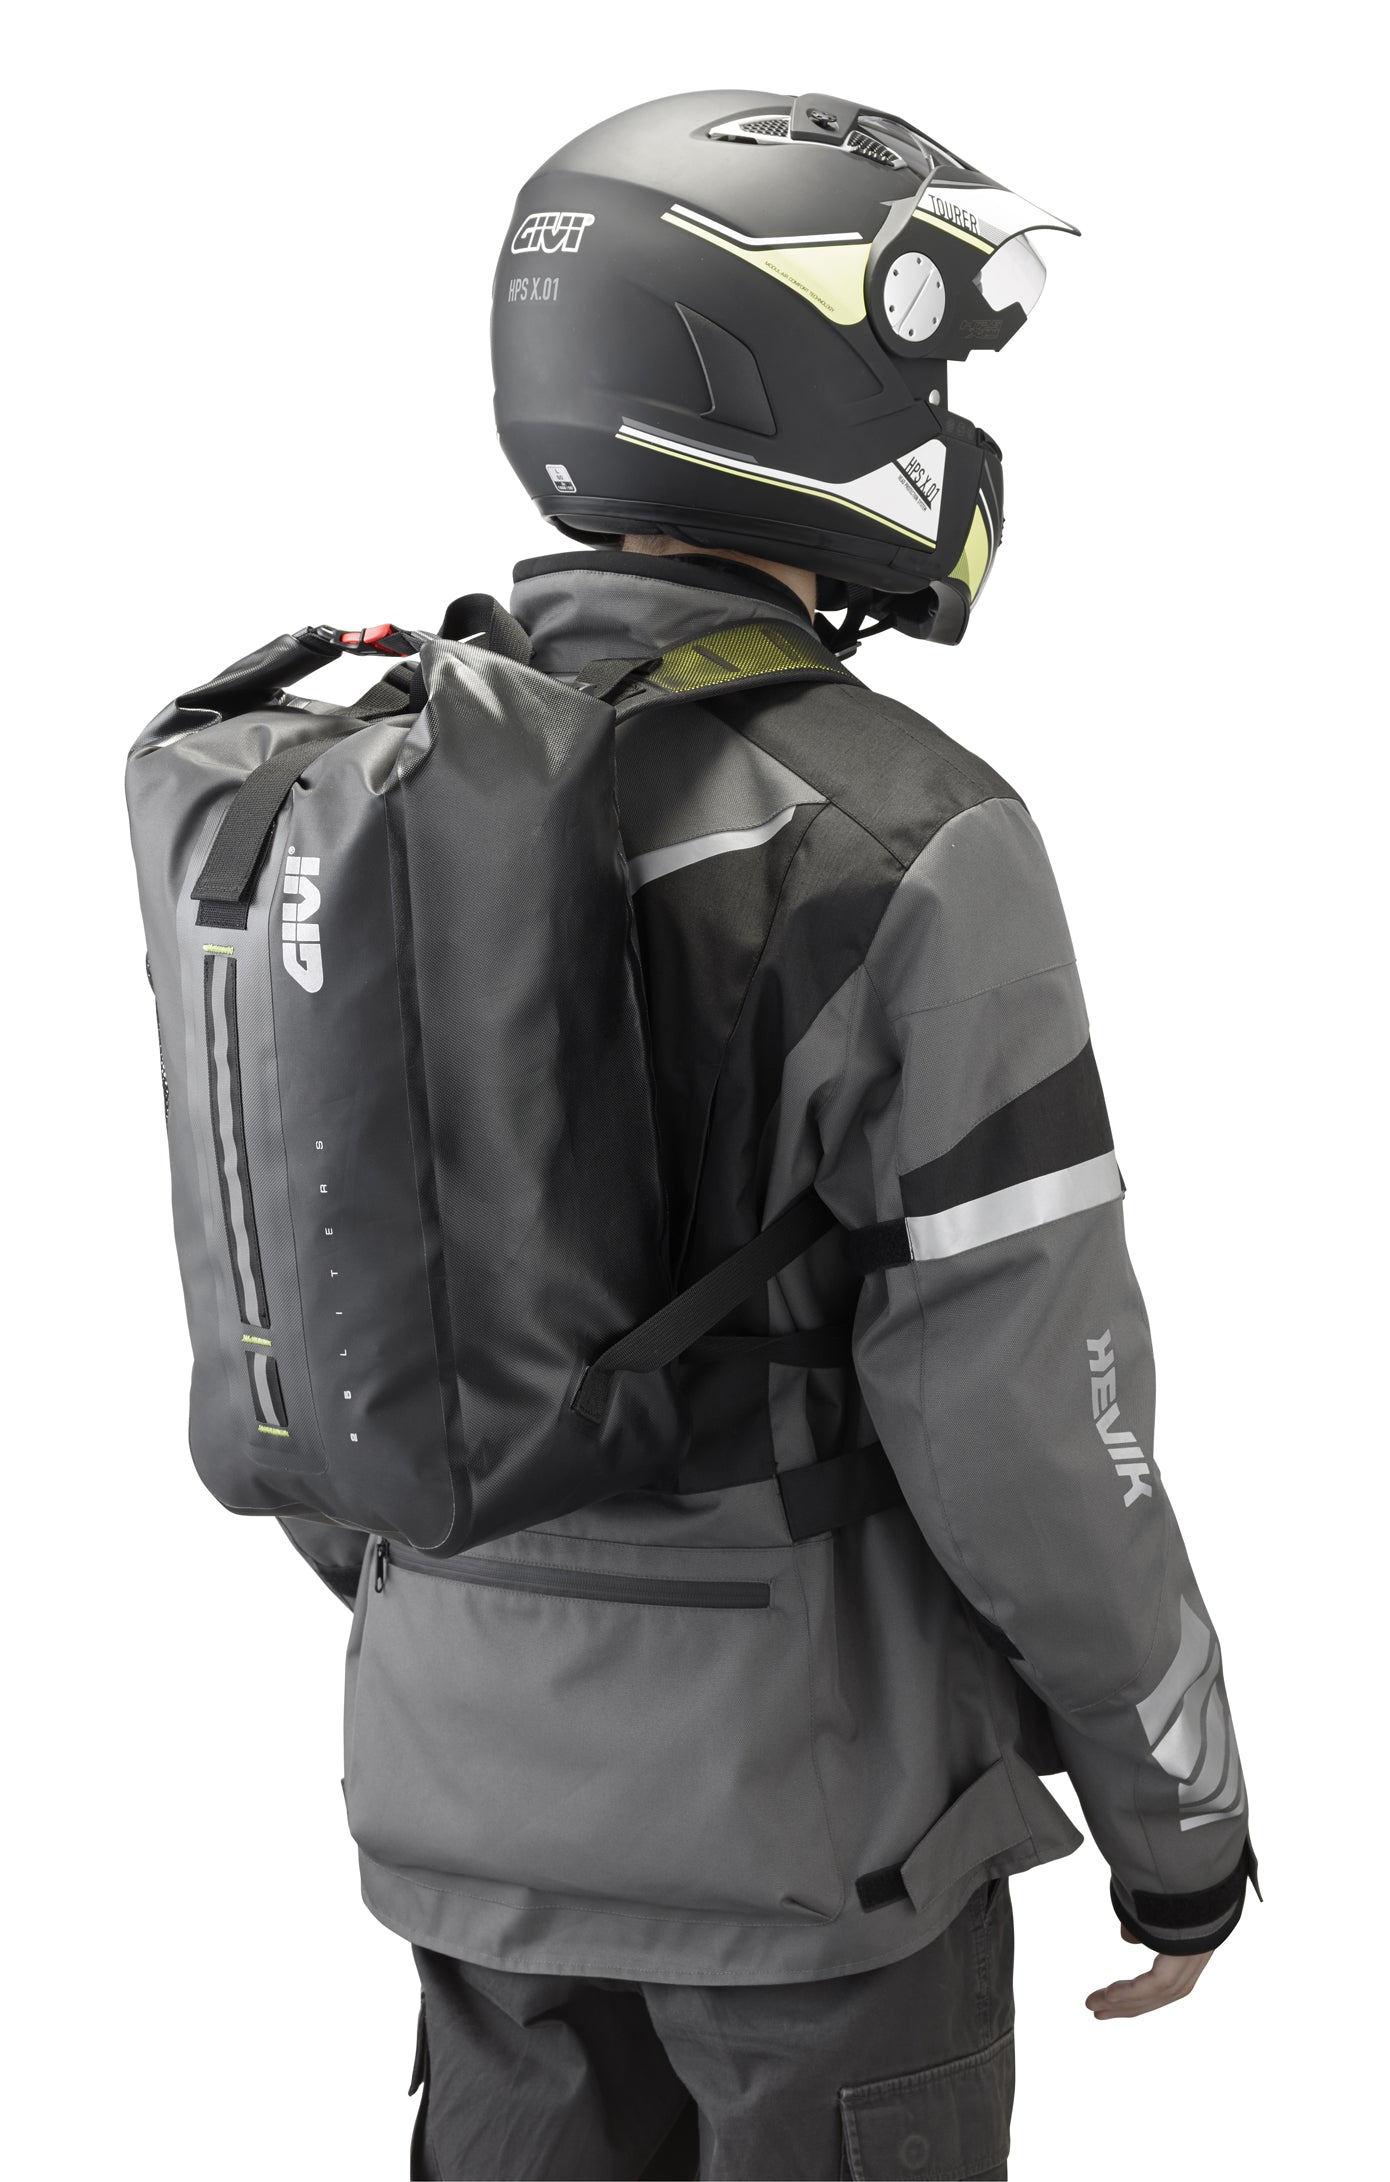 809be41278 Givi GRT701 Gravel-T Waterproof Backpack